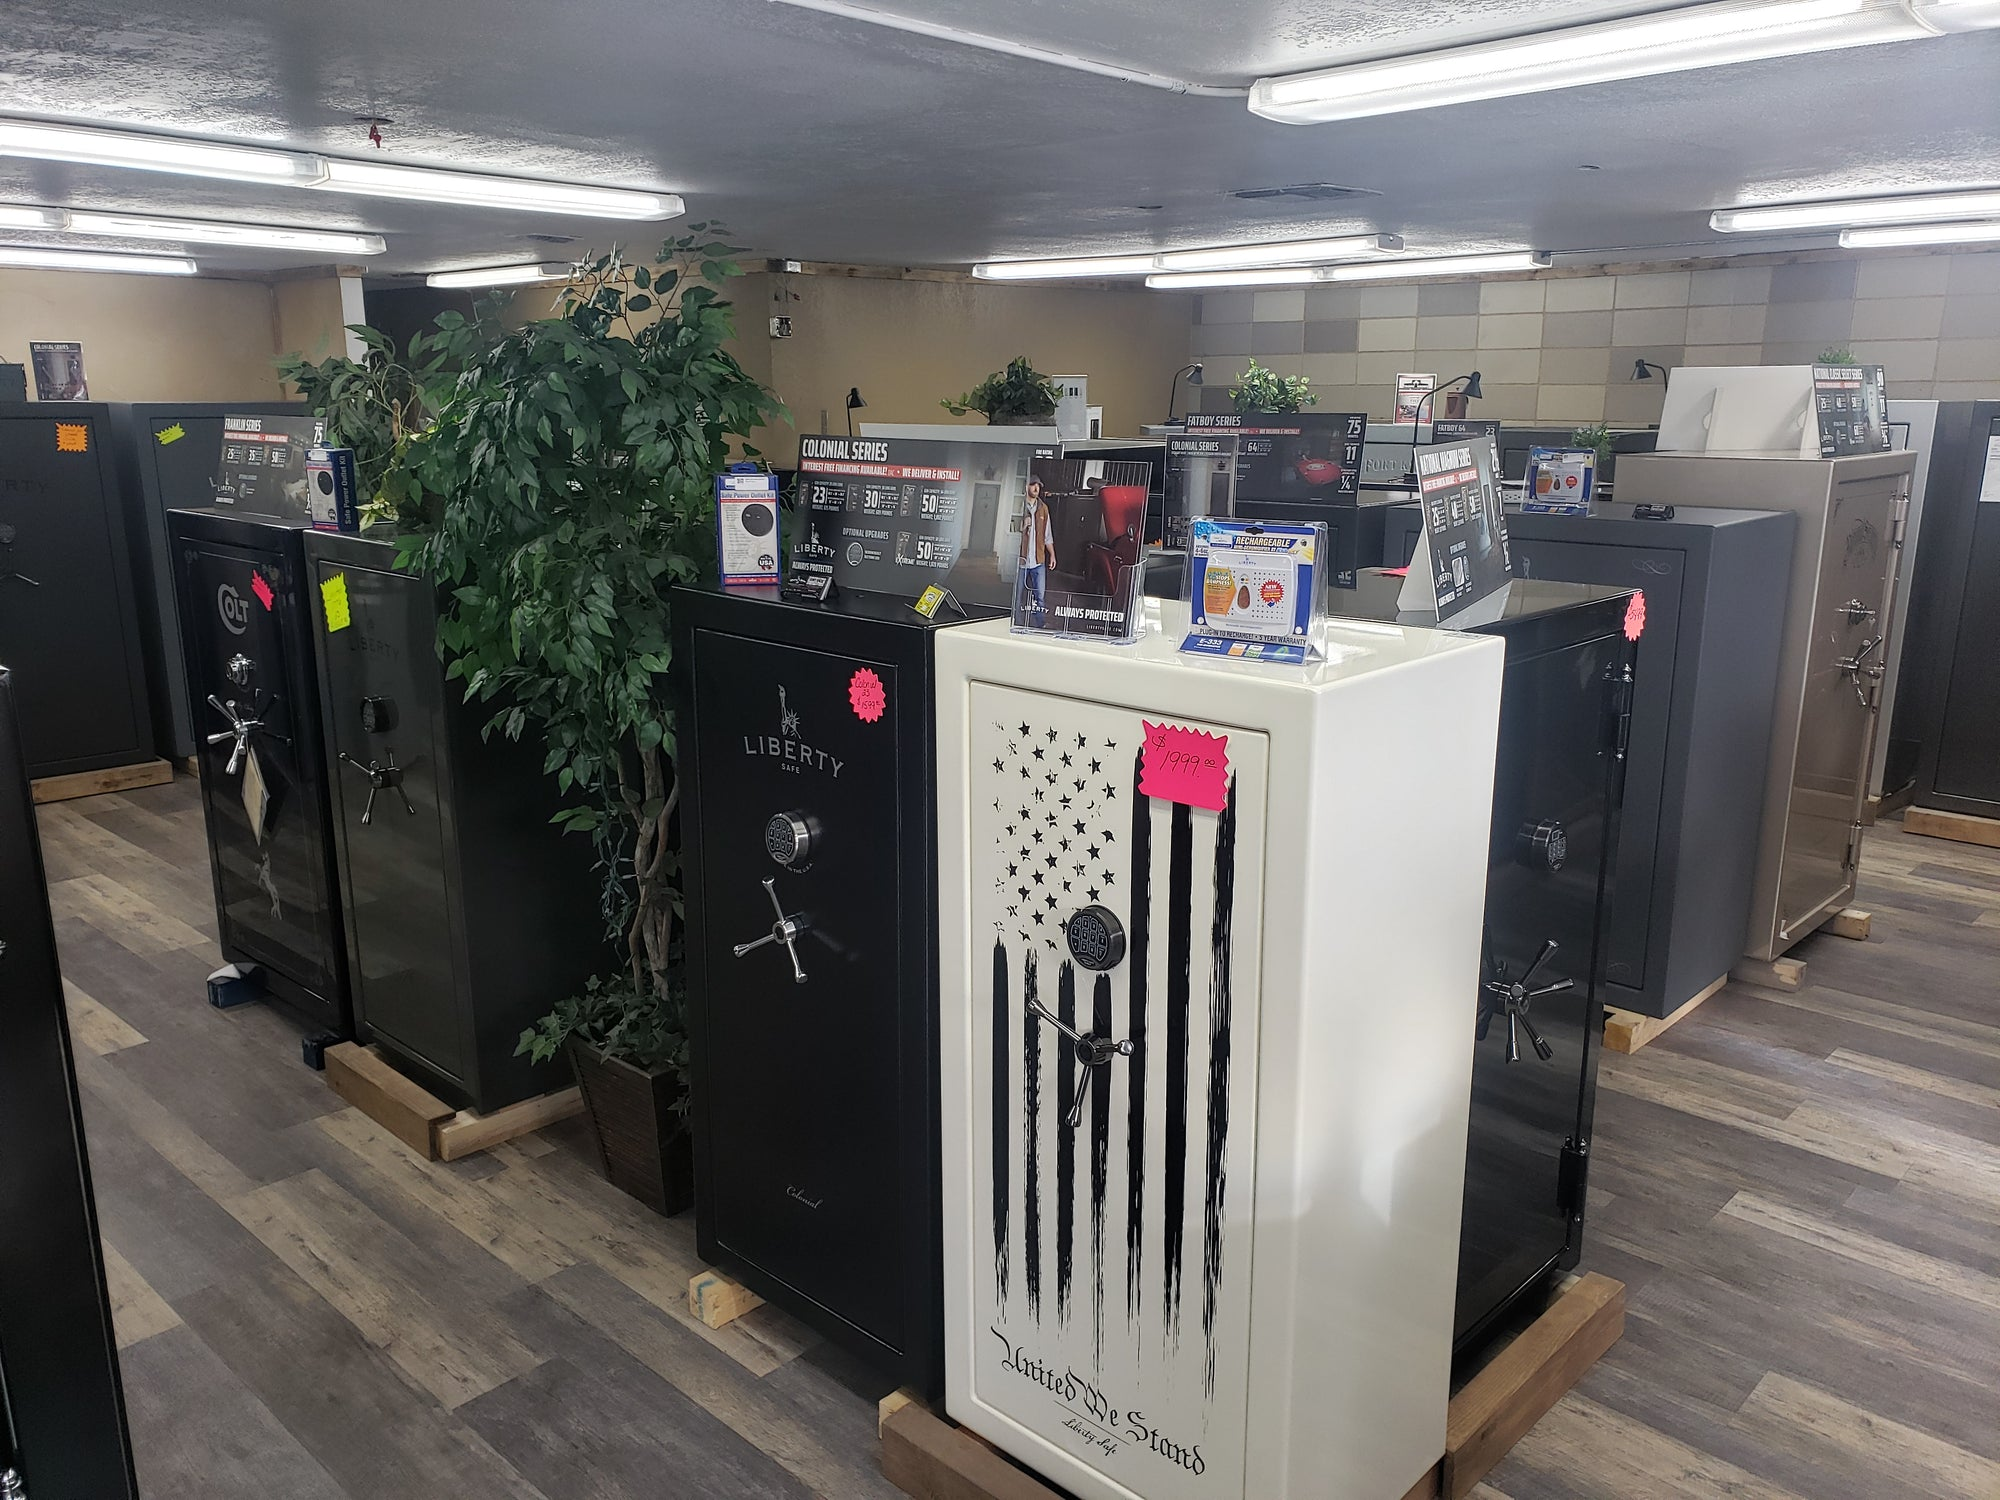 Liberty safes of reno showroom image